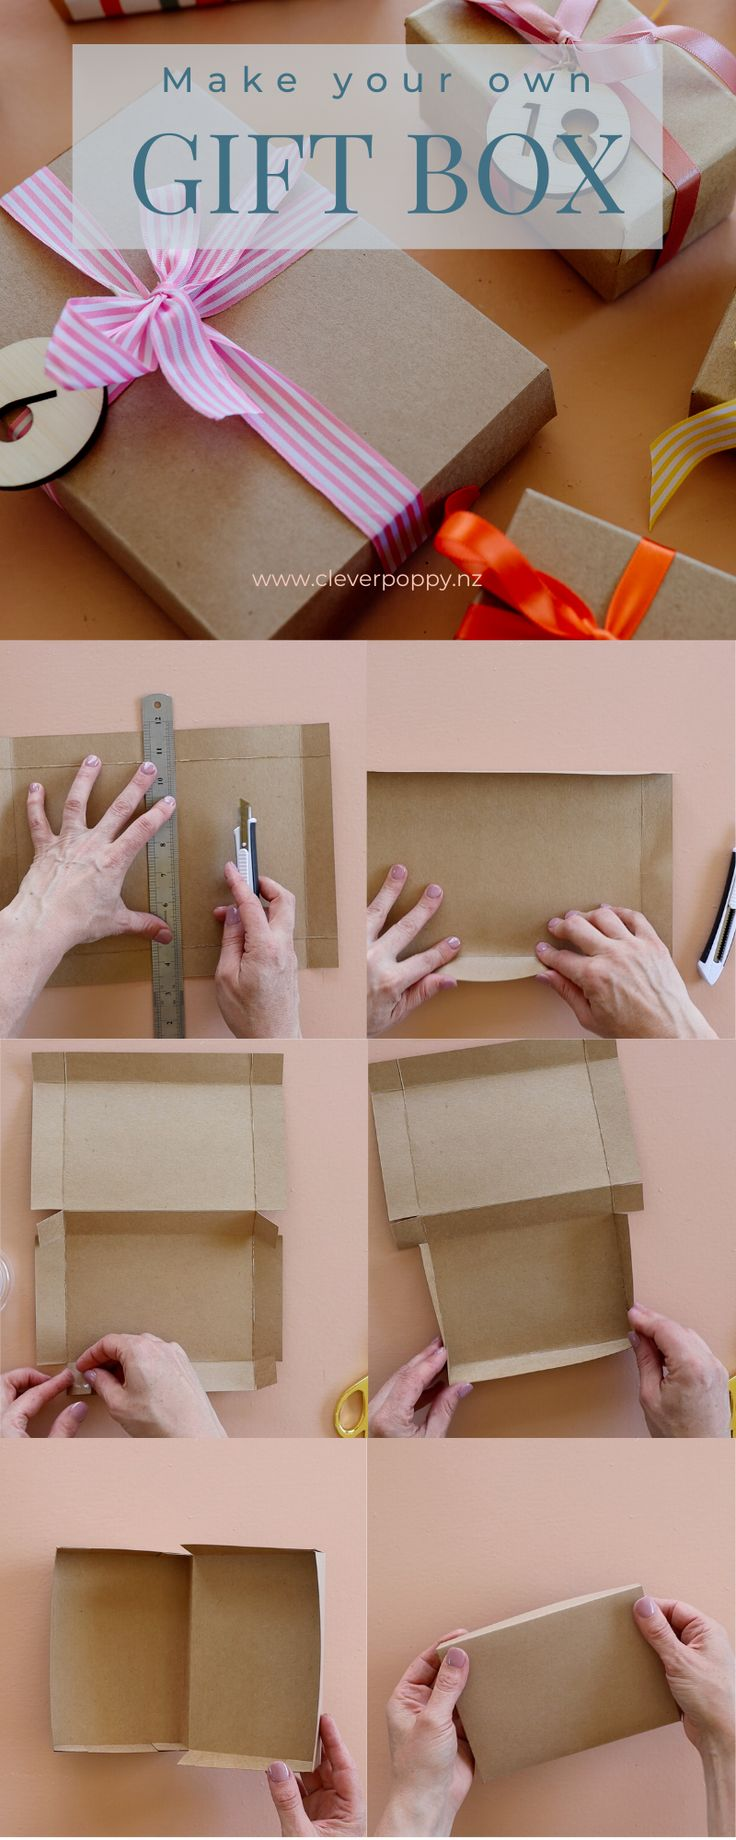 Make your own Cardboard Gift Boxes (no template needed